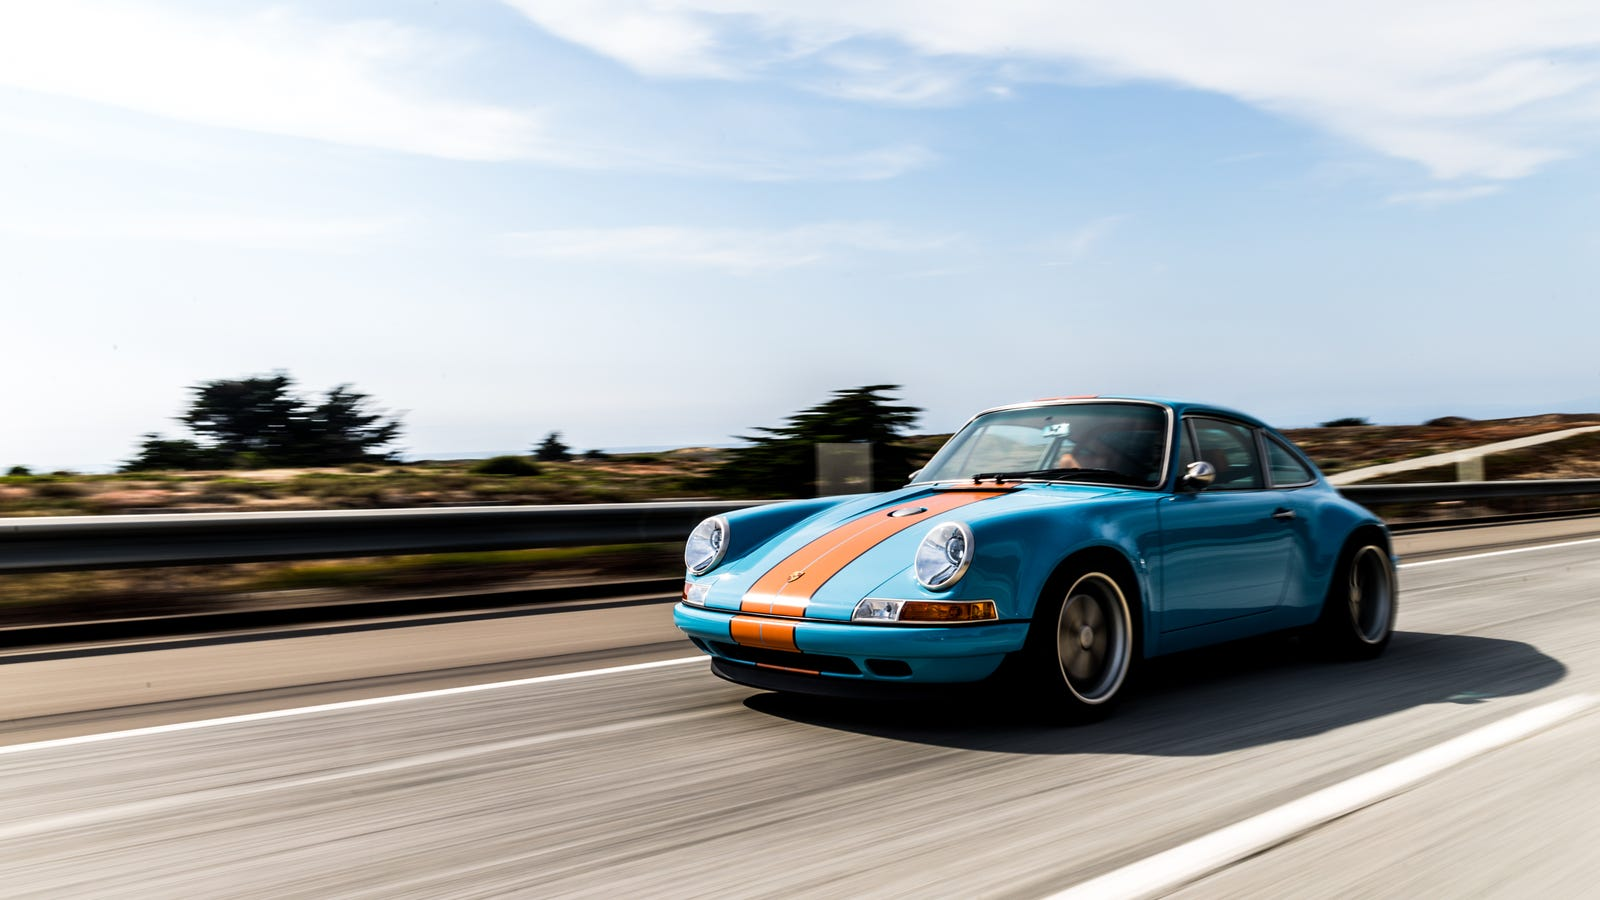 The 911 Reimagined By Singer Obliterates Every Other Car I've Driven